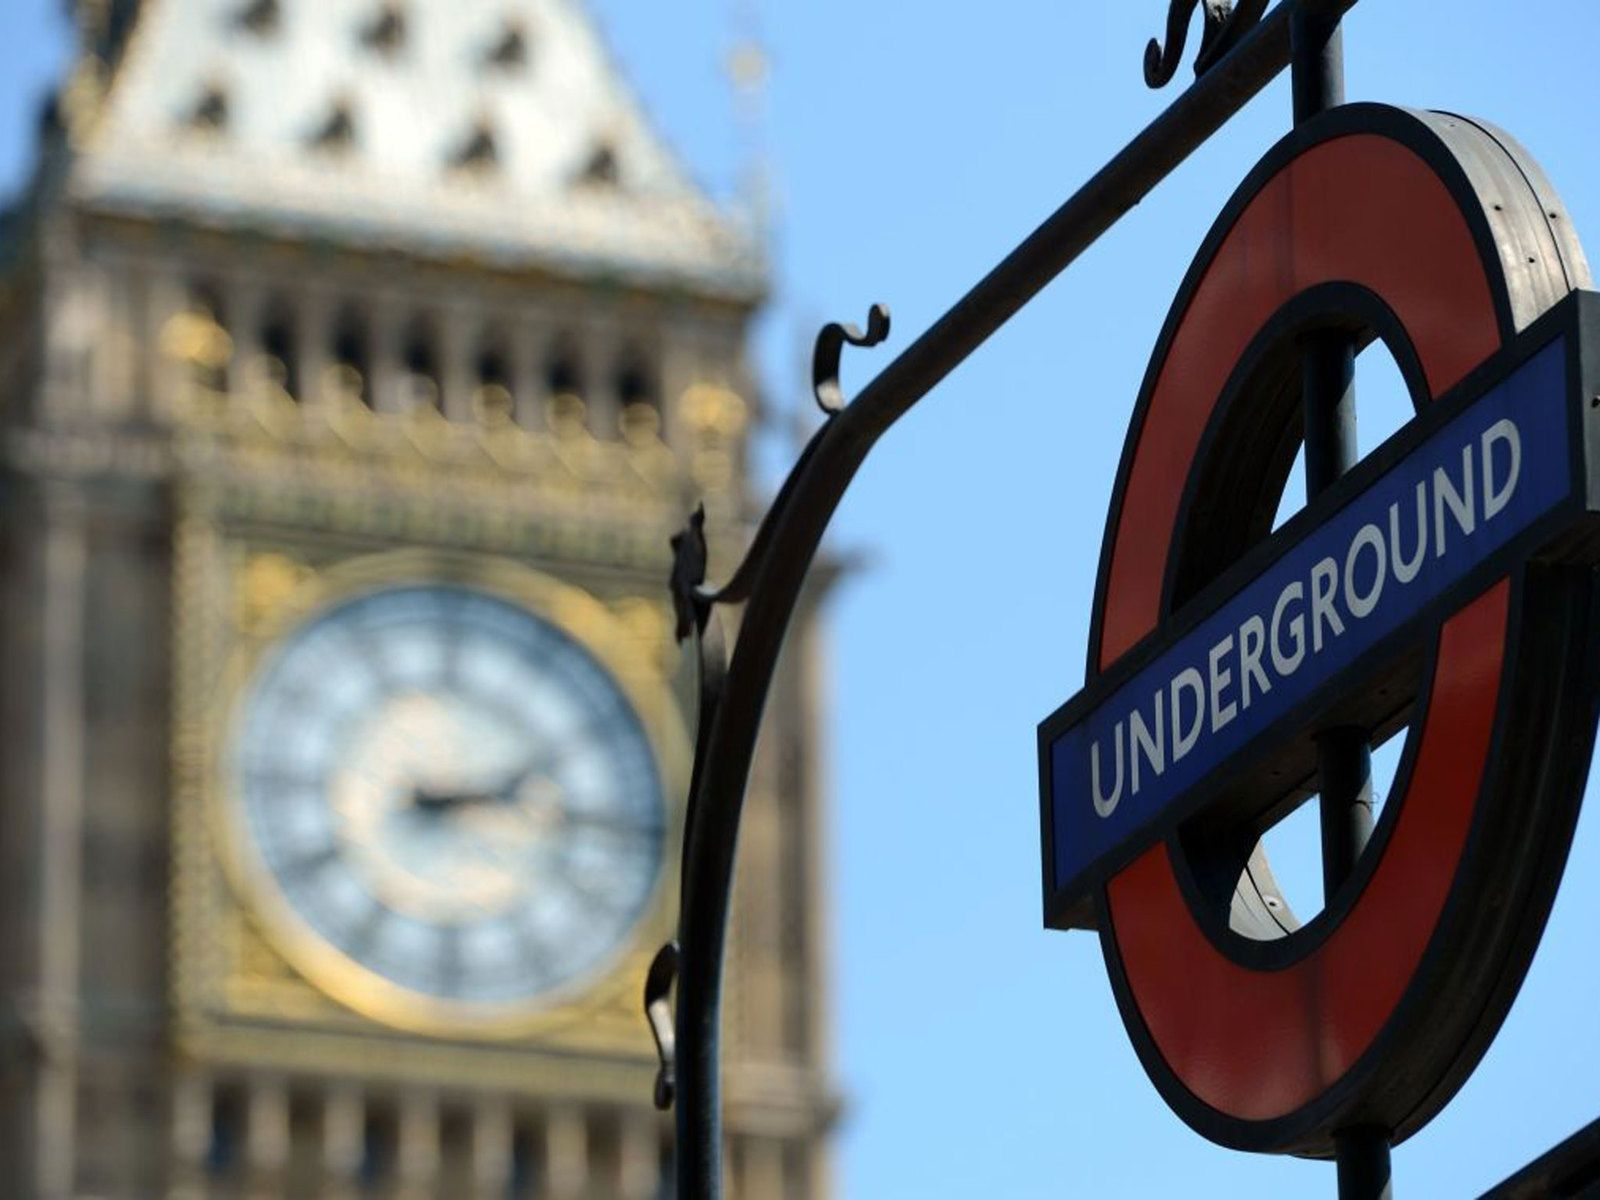 How much of a Londoner are you?